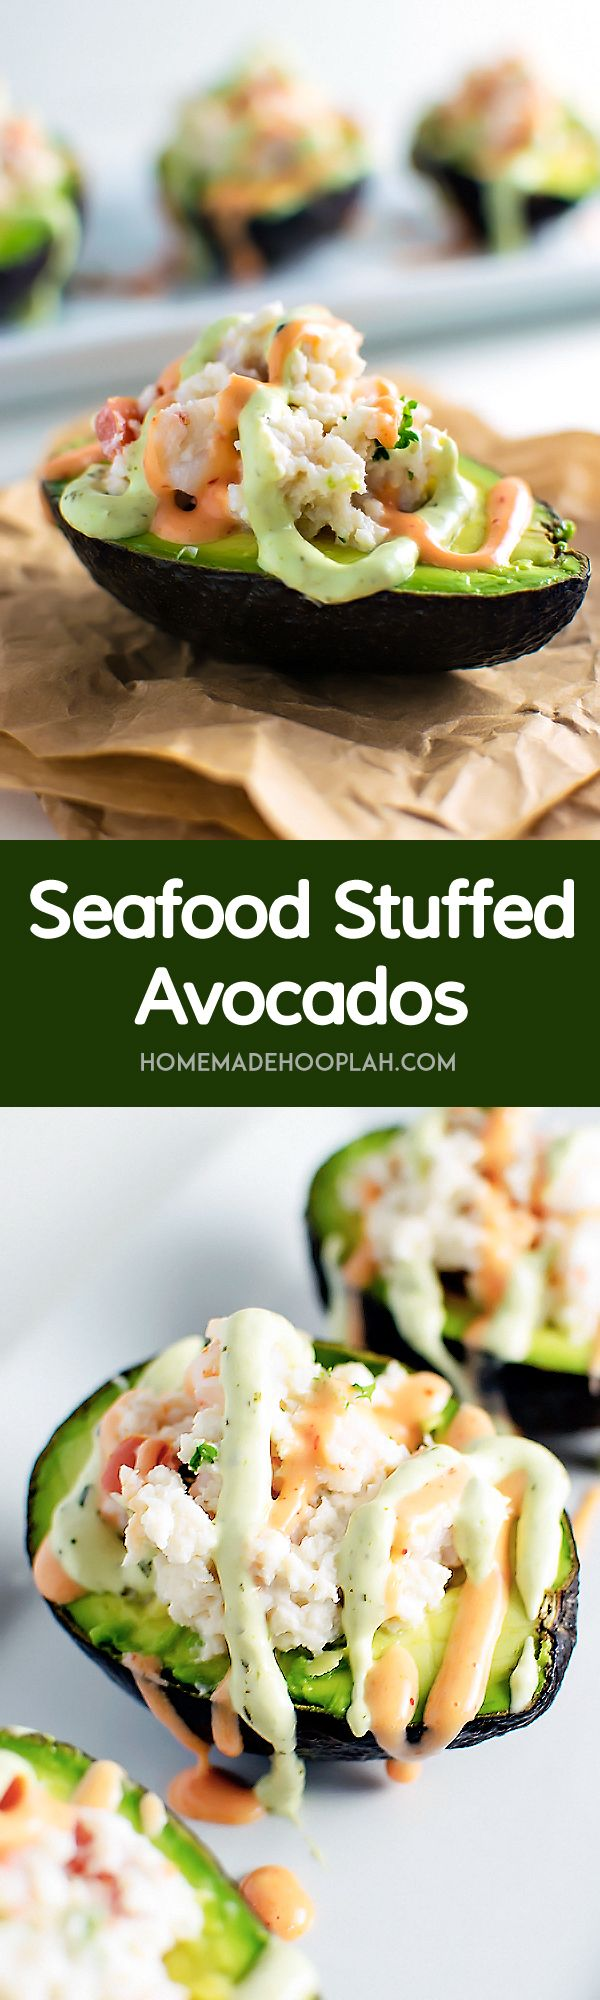 Seafood Stuffed Avocados!